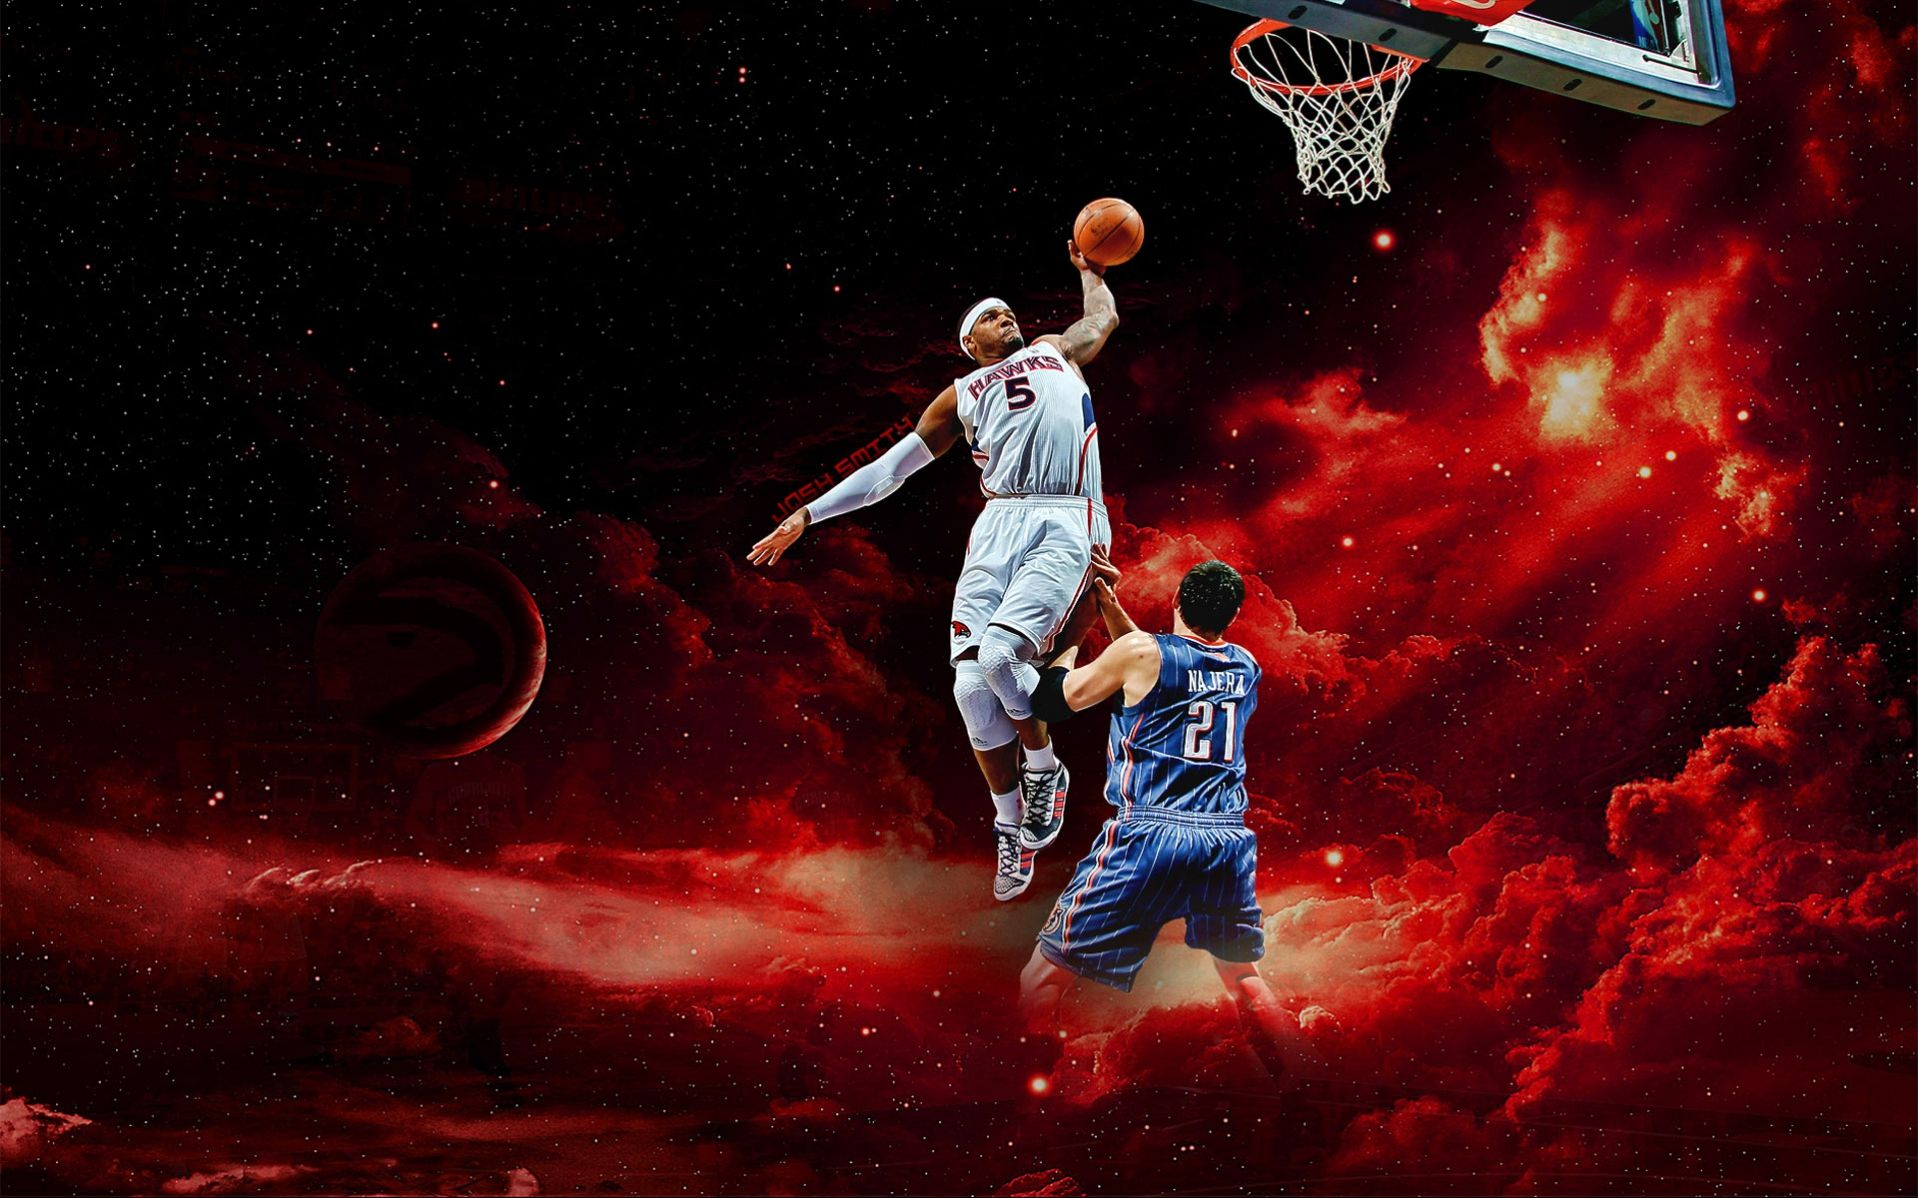 Check out Basketball Wallpapers in HD. We add quality wallpapers, cover pictures and funny pictures on a daily basis.